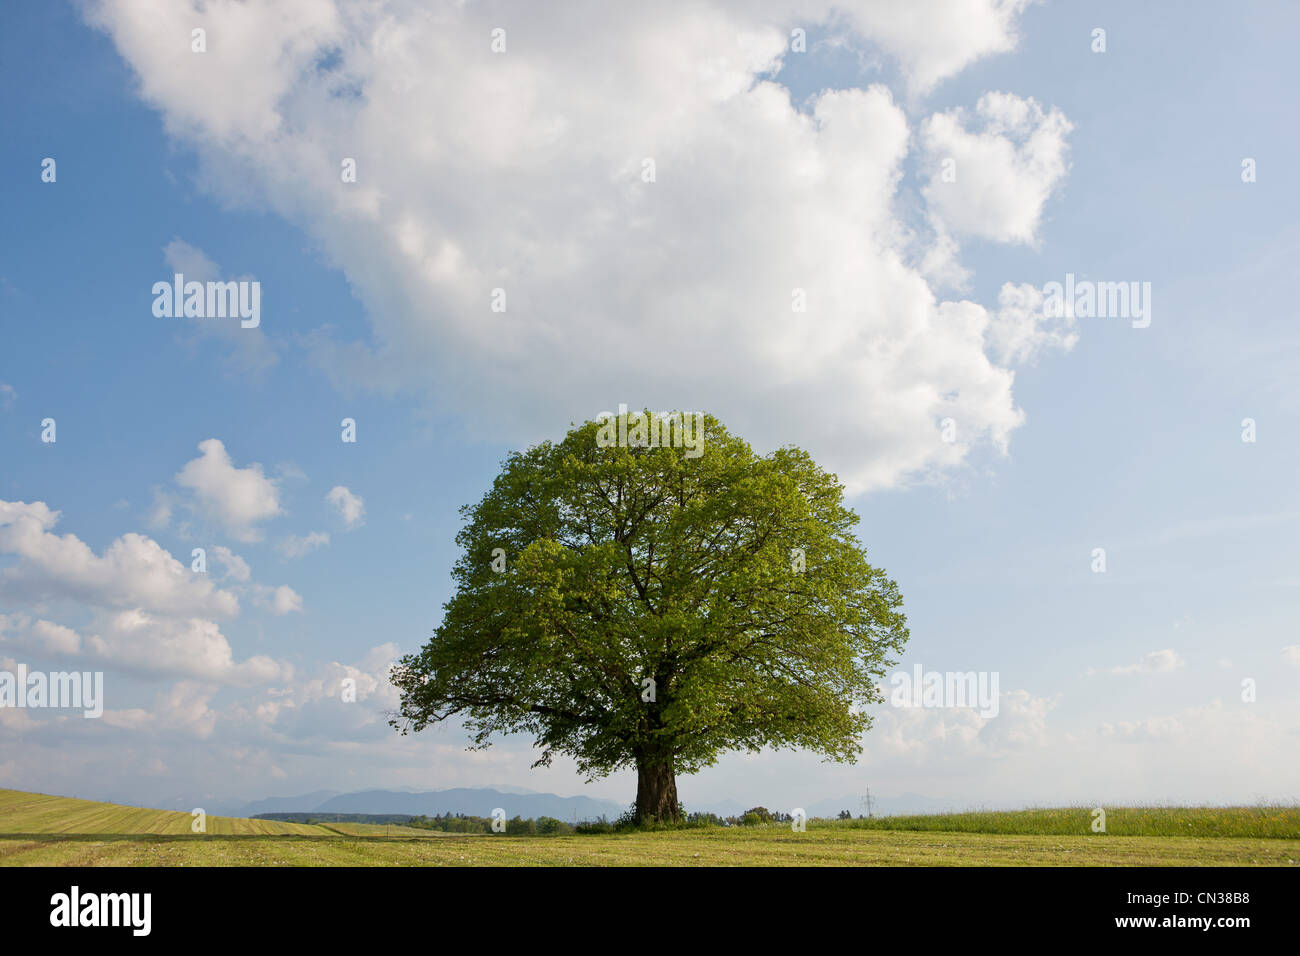 Single tree in field - Stock Image